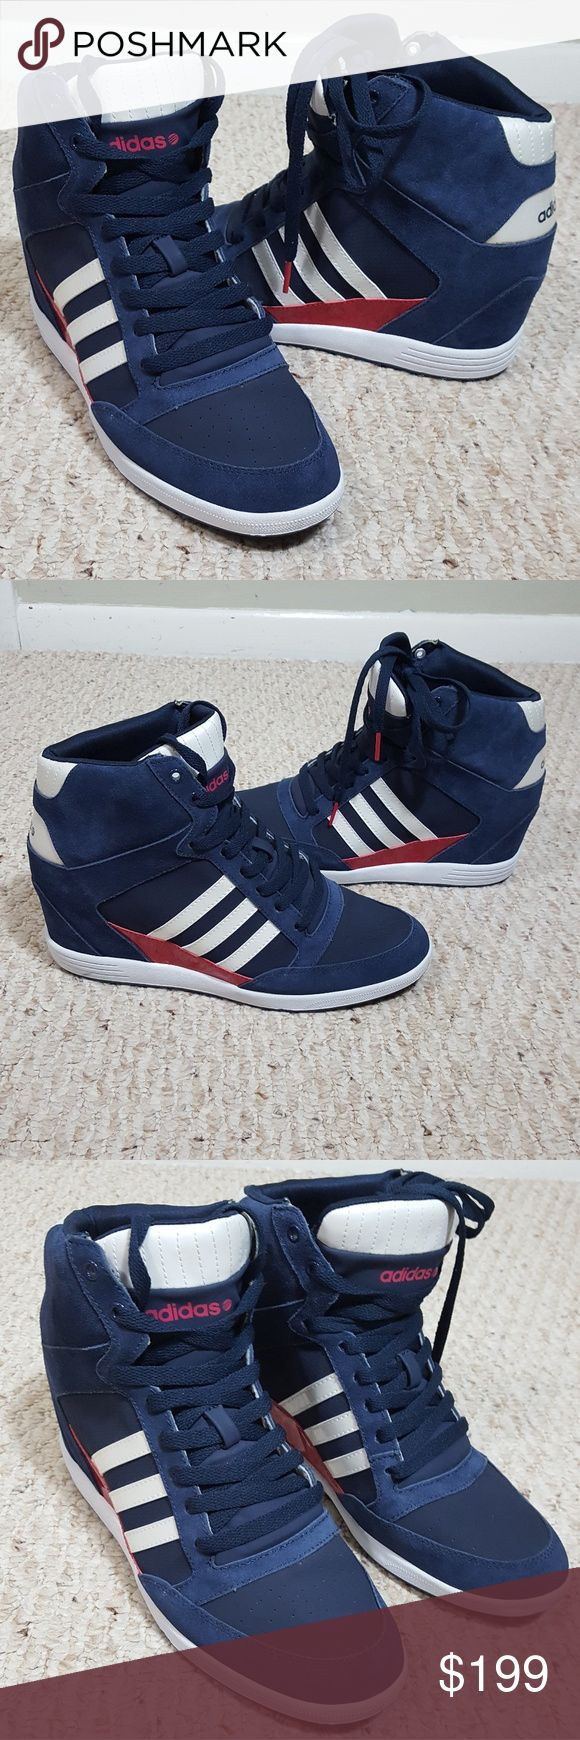 Adidas NEO Label Wedge Excellent Condition  Never worn outside. Super High Wedge  Blues with trade mark 3 stripes True to size 11 womens No Box 🔶️No Trades No Modeling  Bundle and save  🔶️FIRM PRICE,  unless bundle! adidas Shoes Sneakers